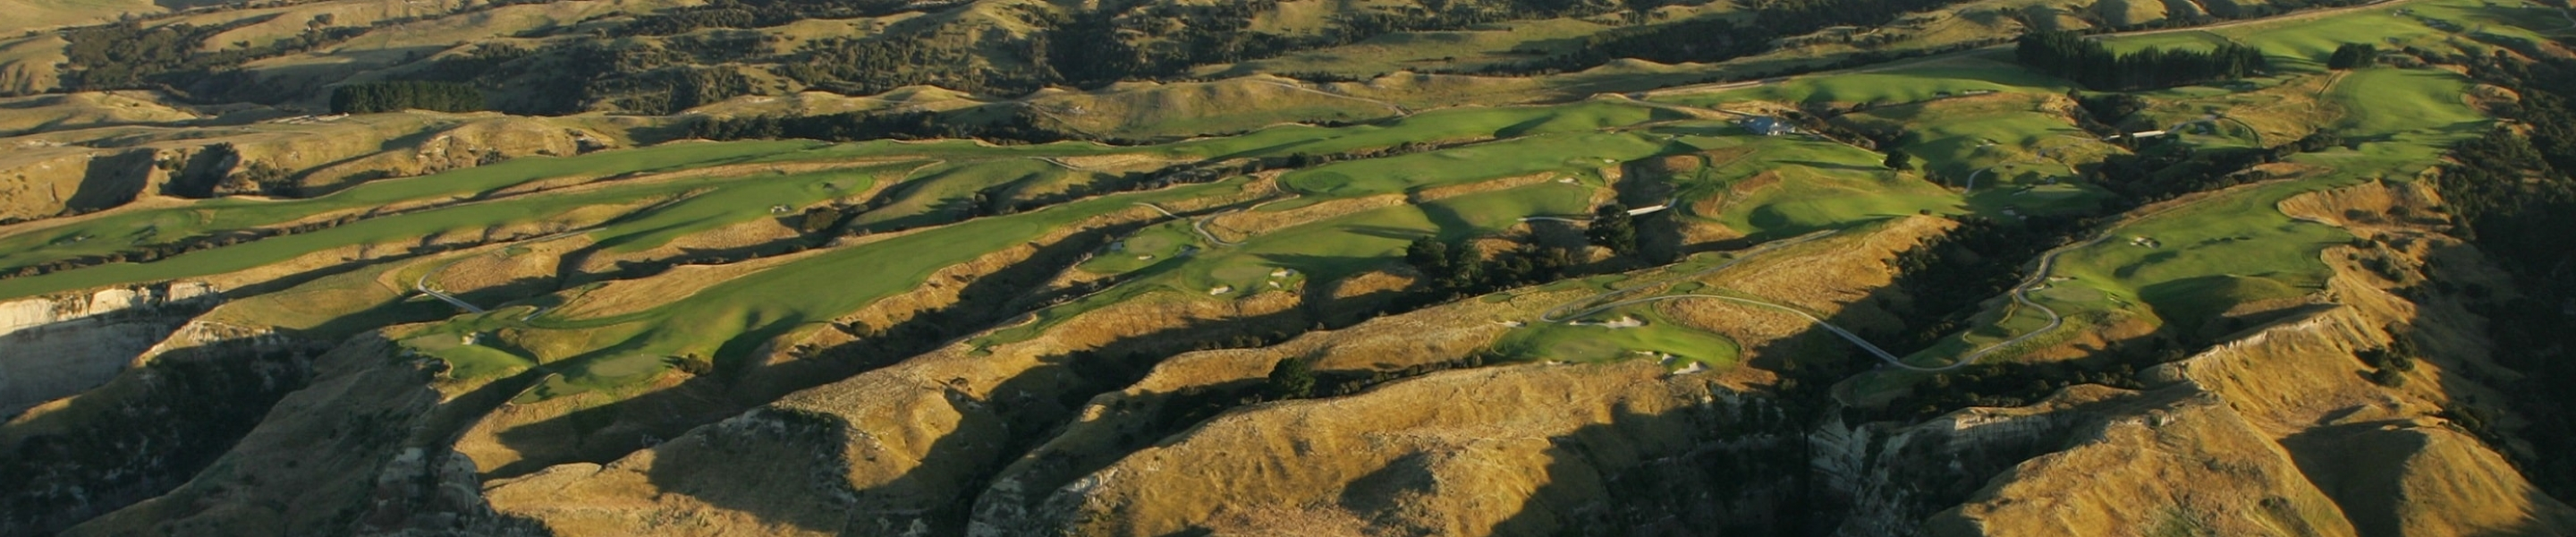 North Island Escorted Golf Tour (February 2022)